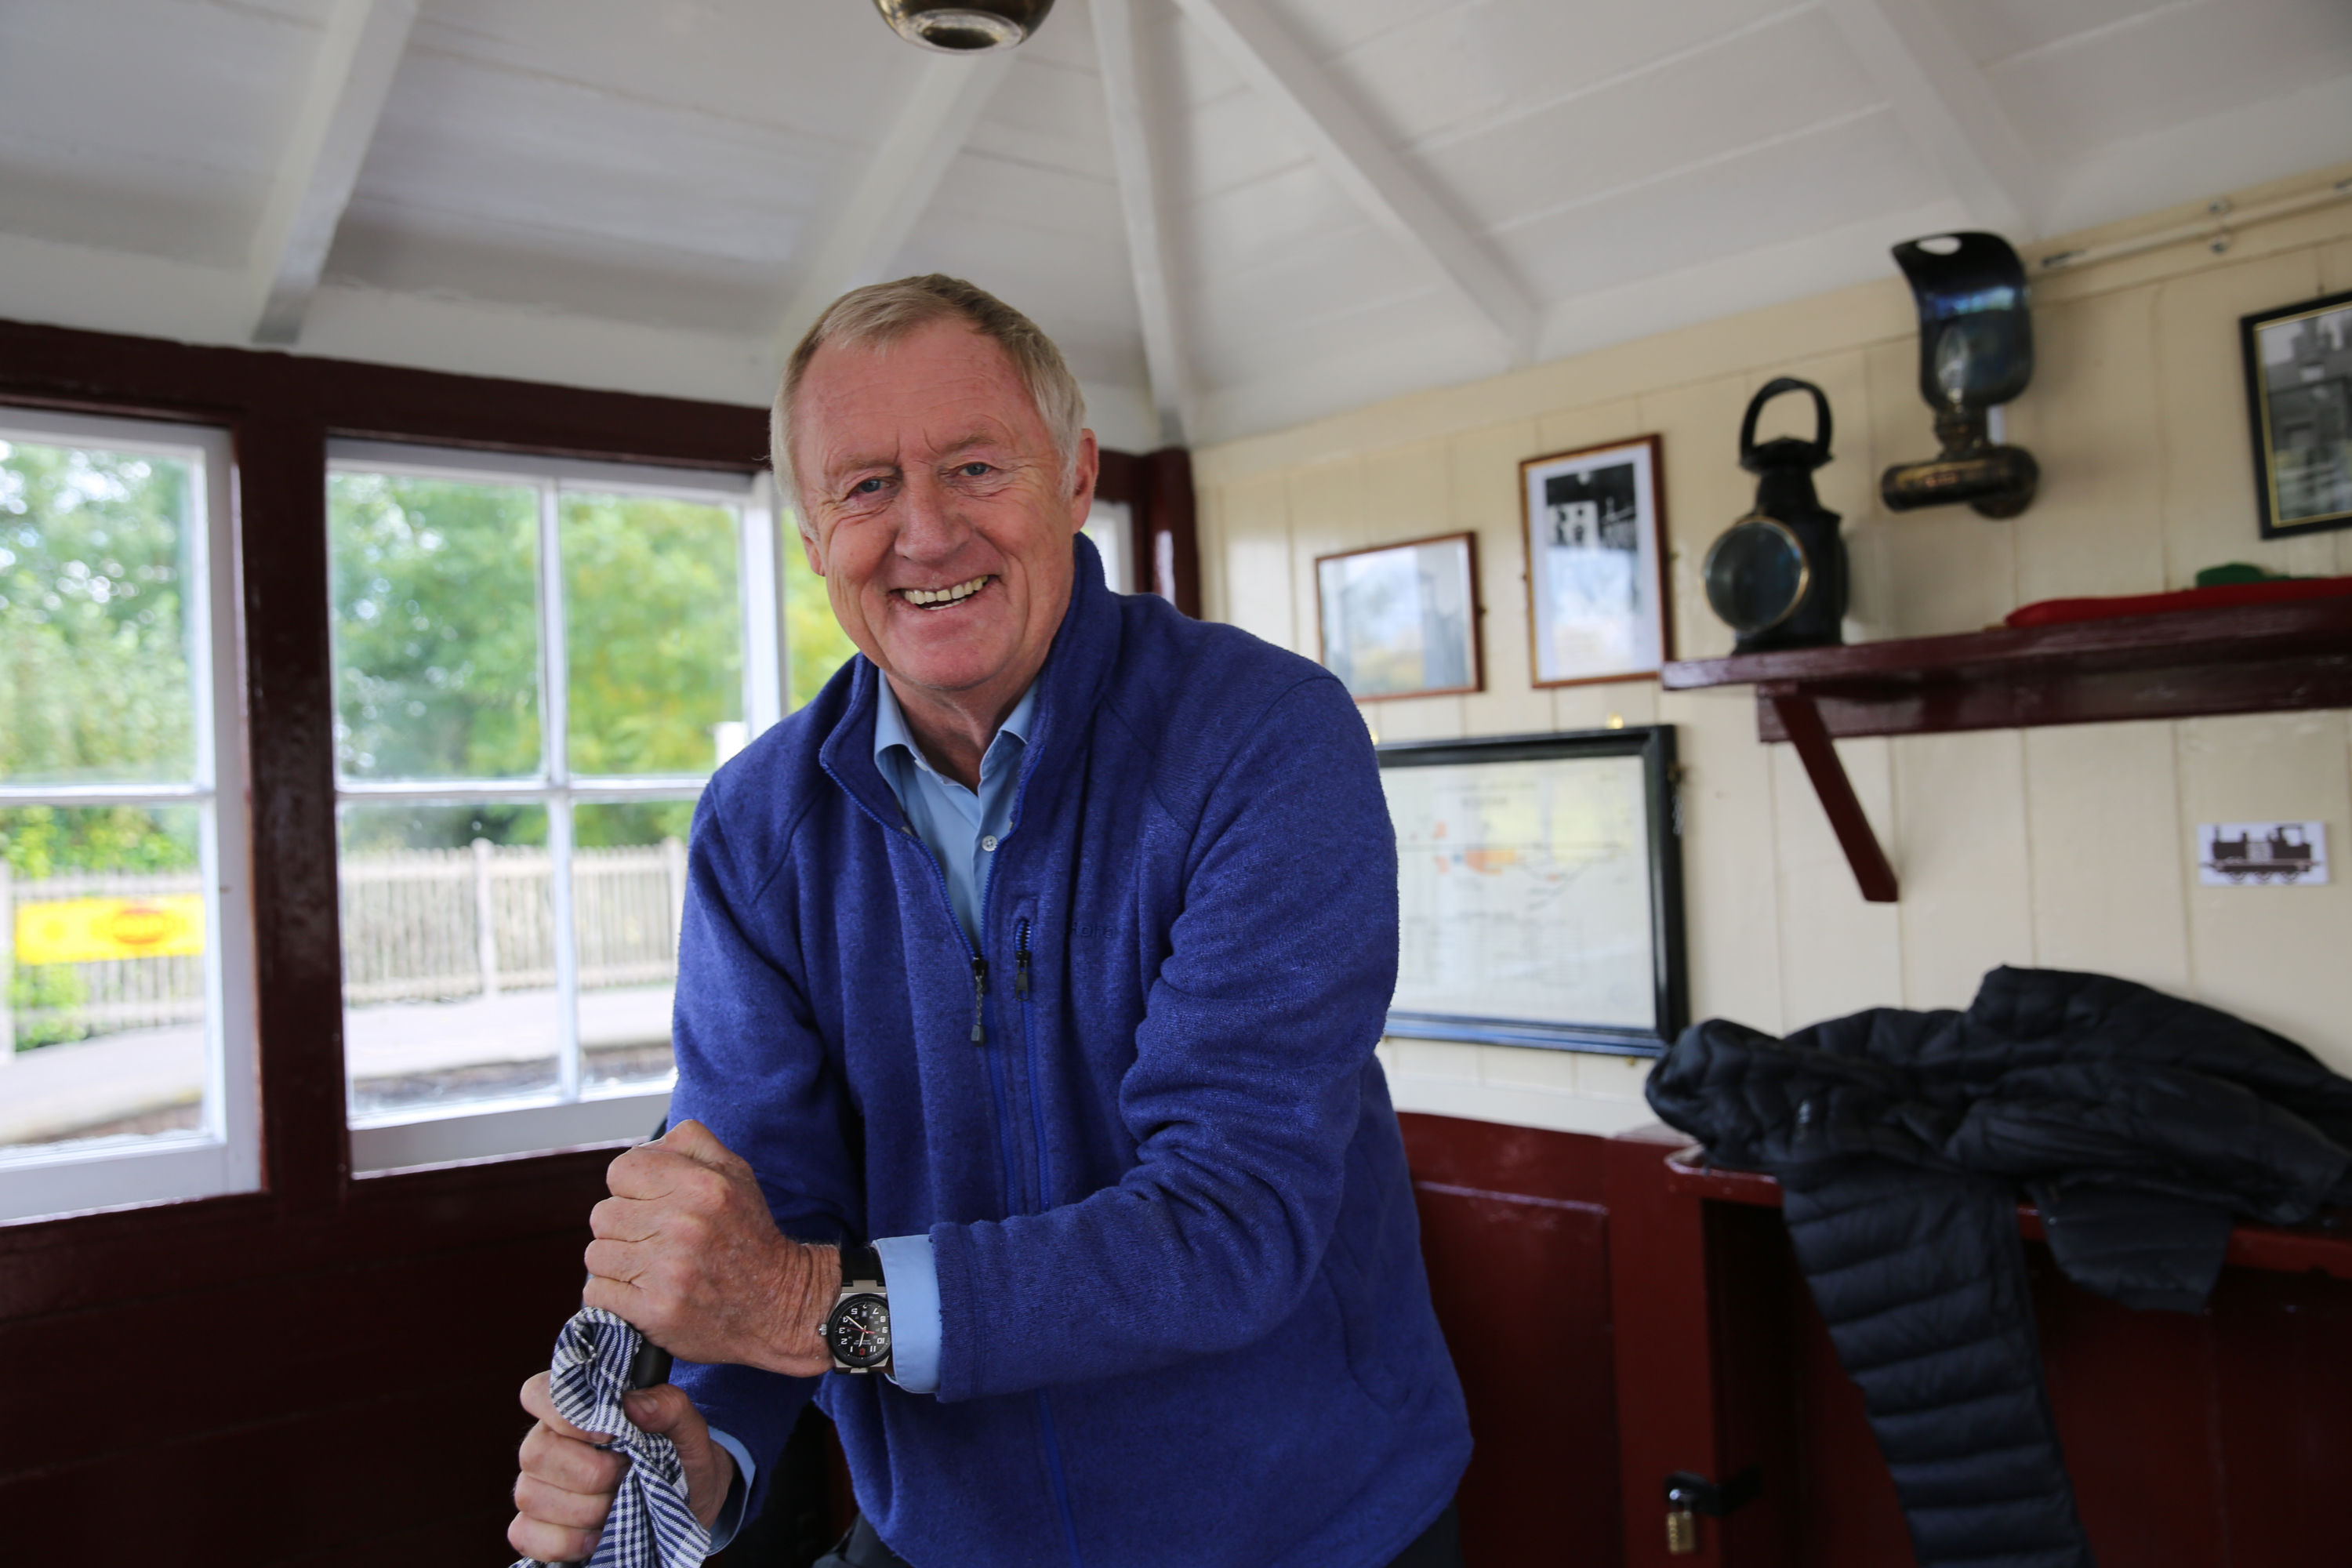 Chris Tarrant Biography